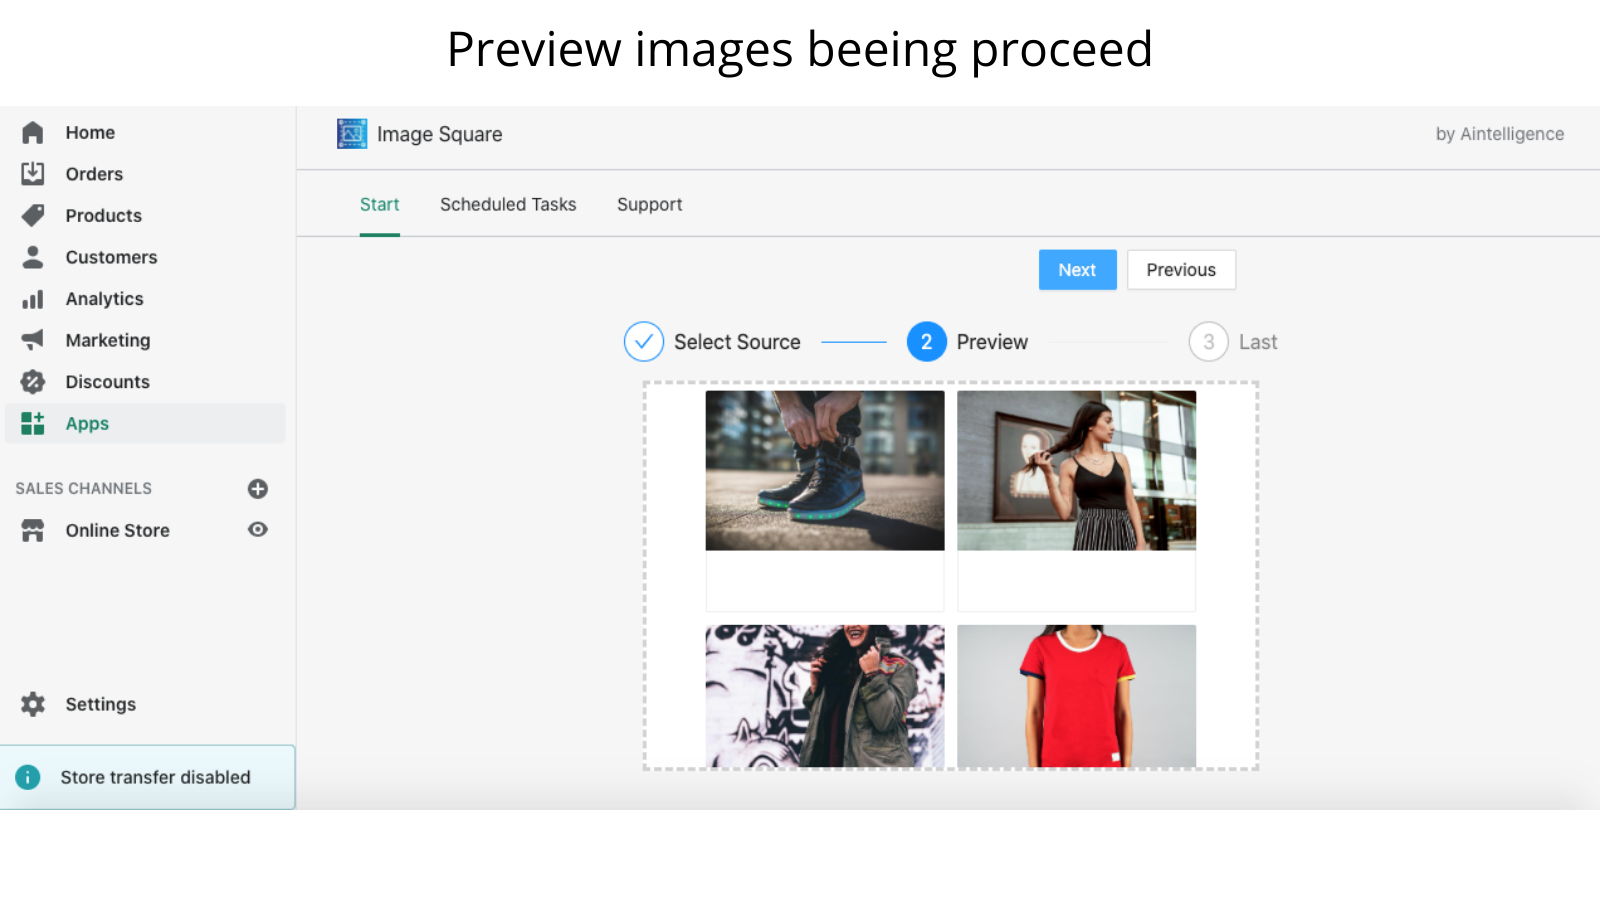 image_square_preview